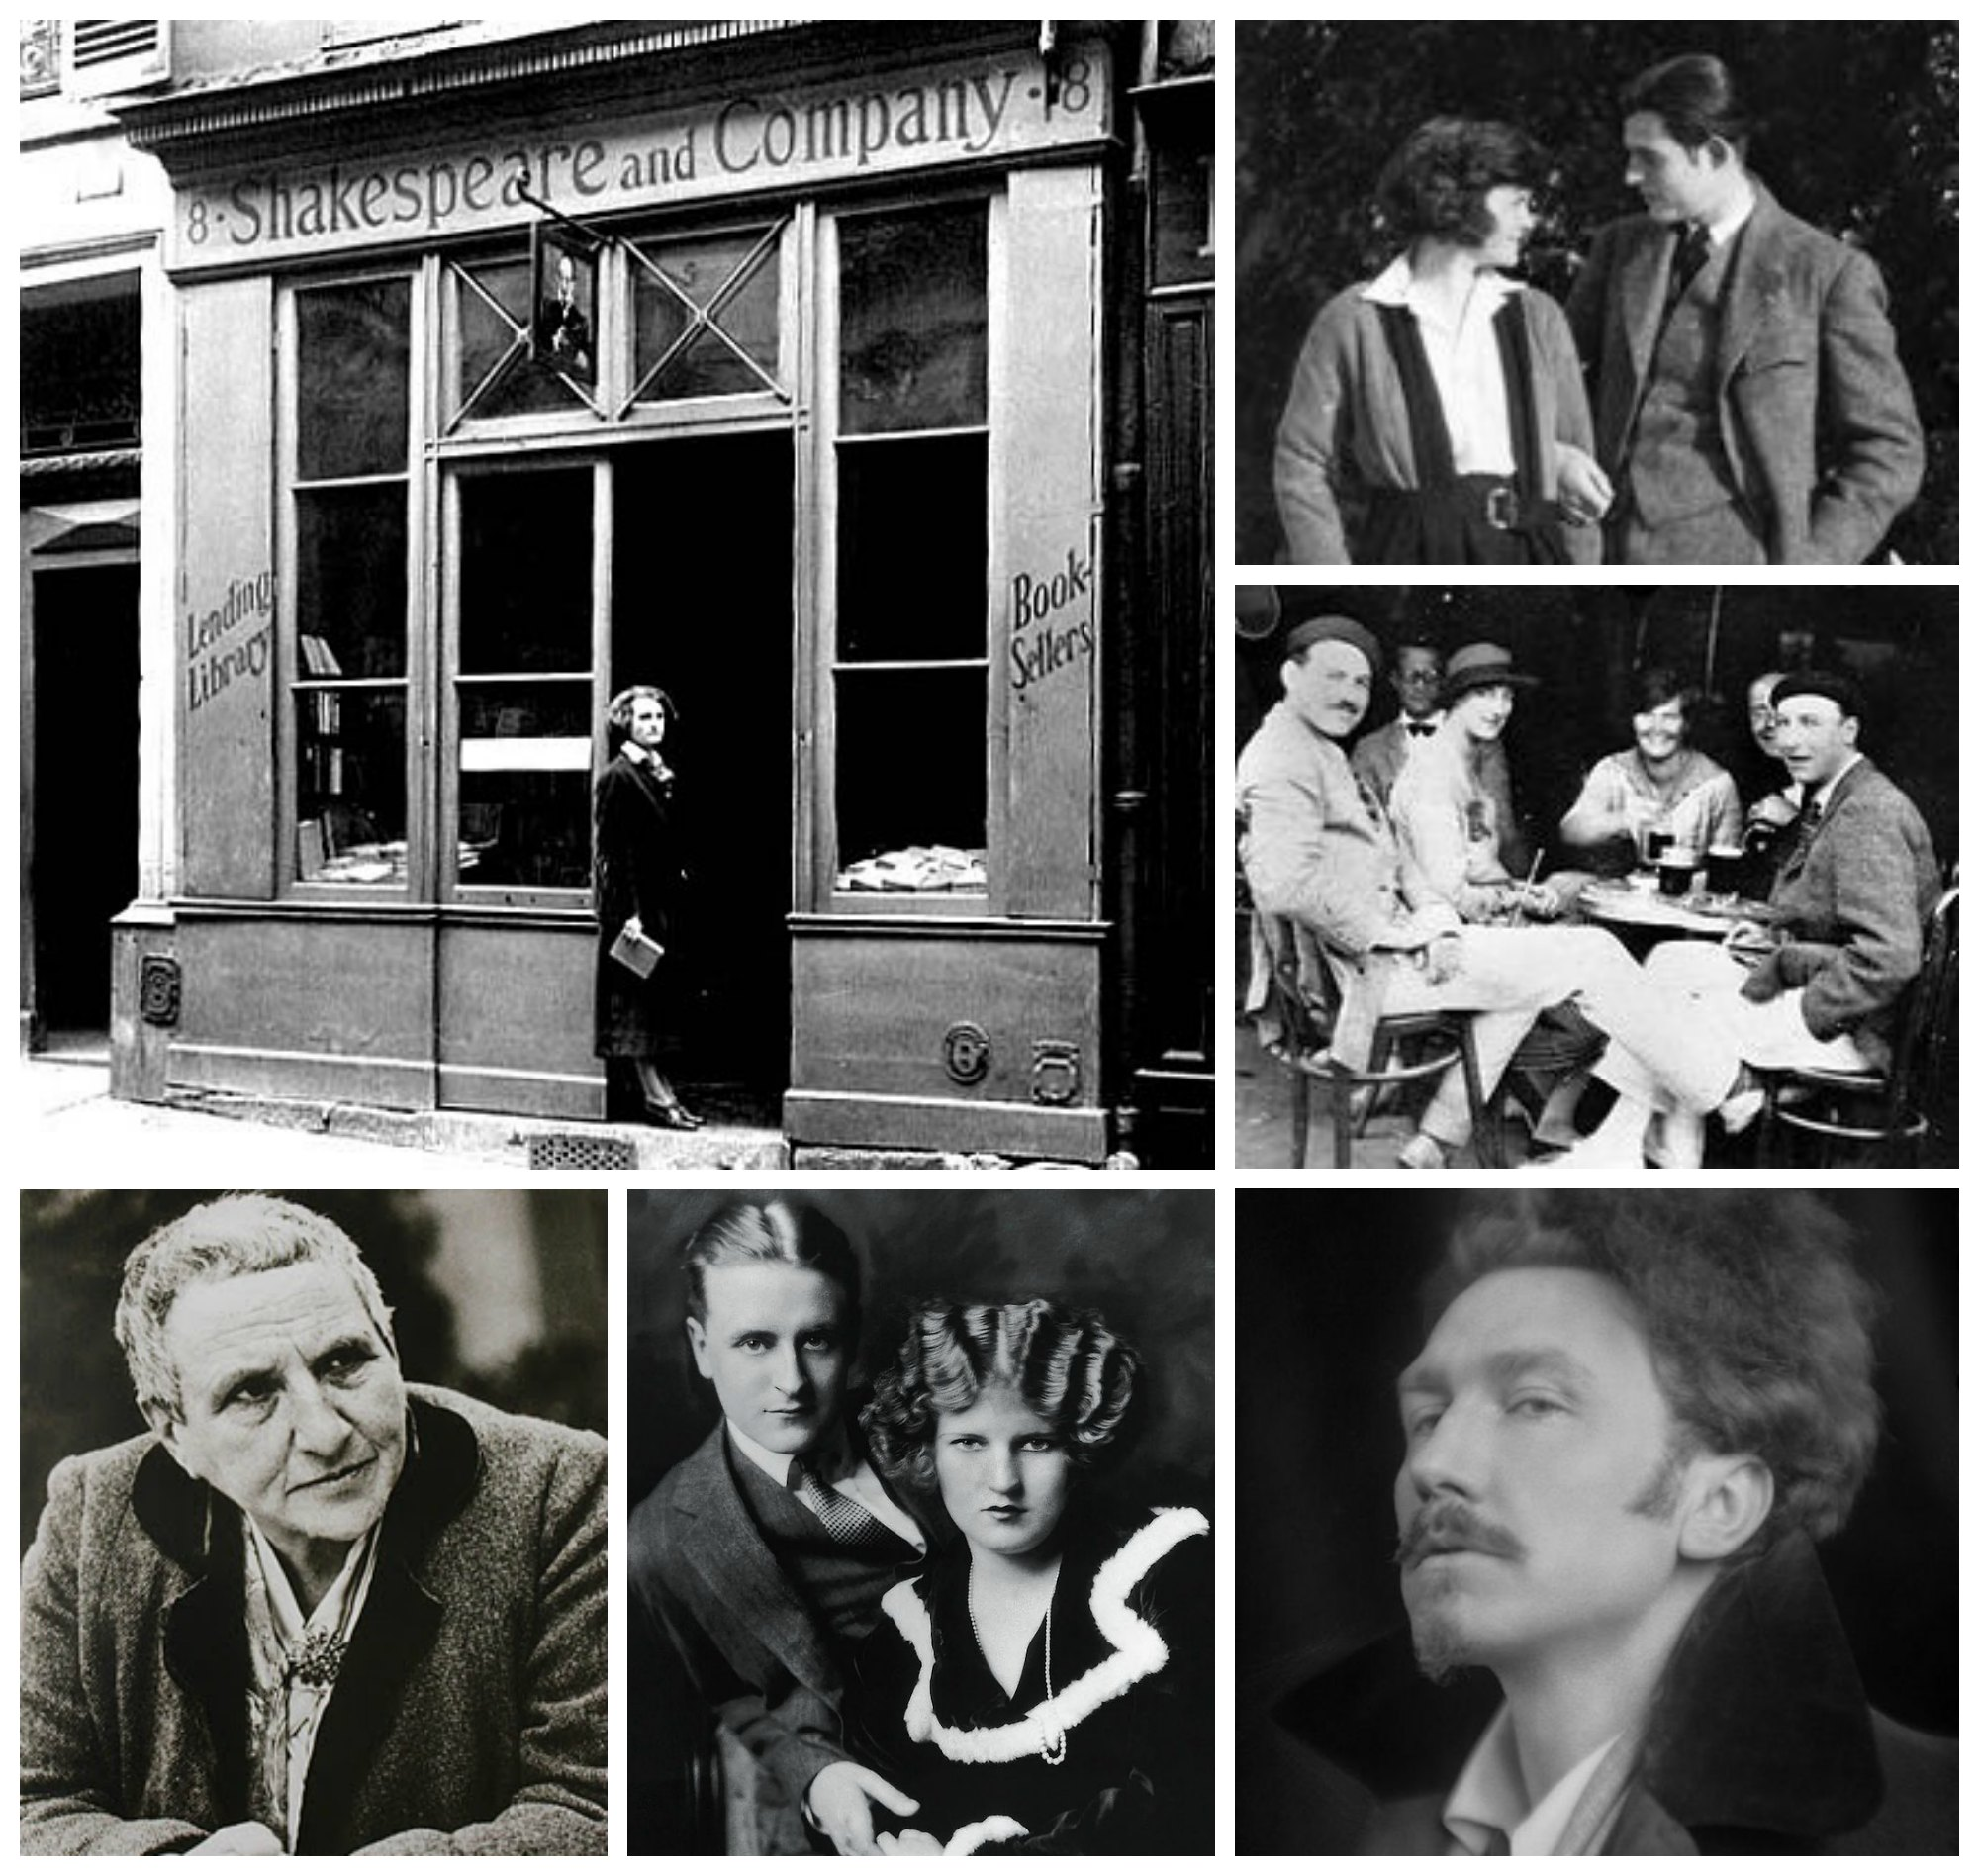 Photo collage: Shakespeare and Company, Gertrude Stein, Ezra Pound, F. Scott and Zelda Fitzgerald, Hadley and Ernest Hemingway